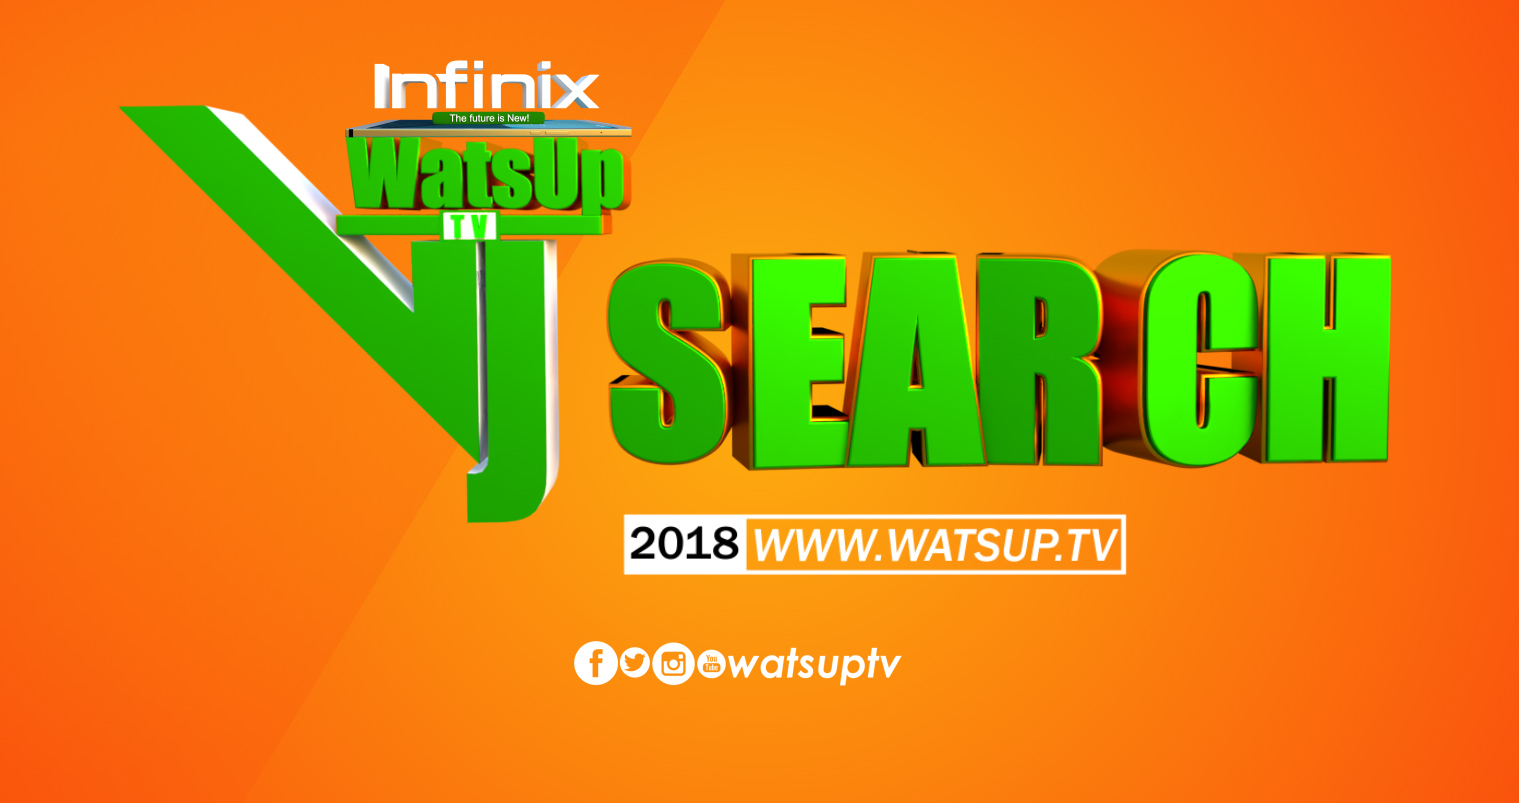 Infinix WatsUp TV VJ Search 2018